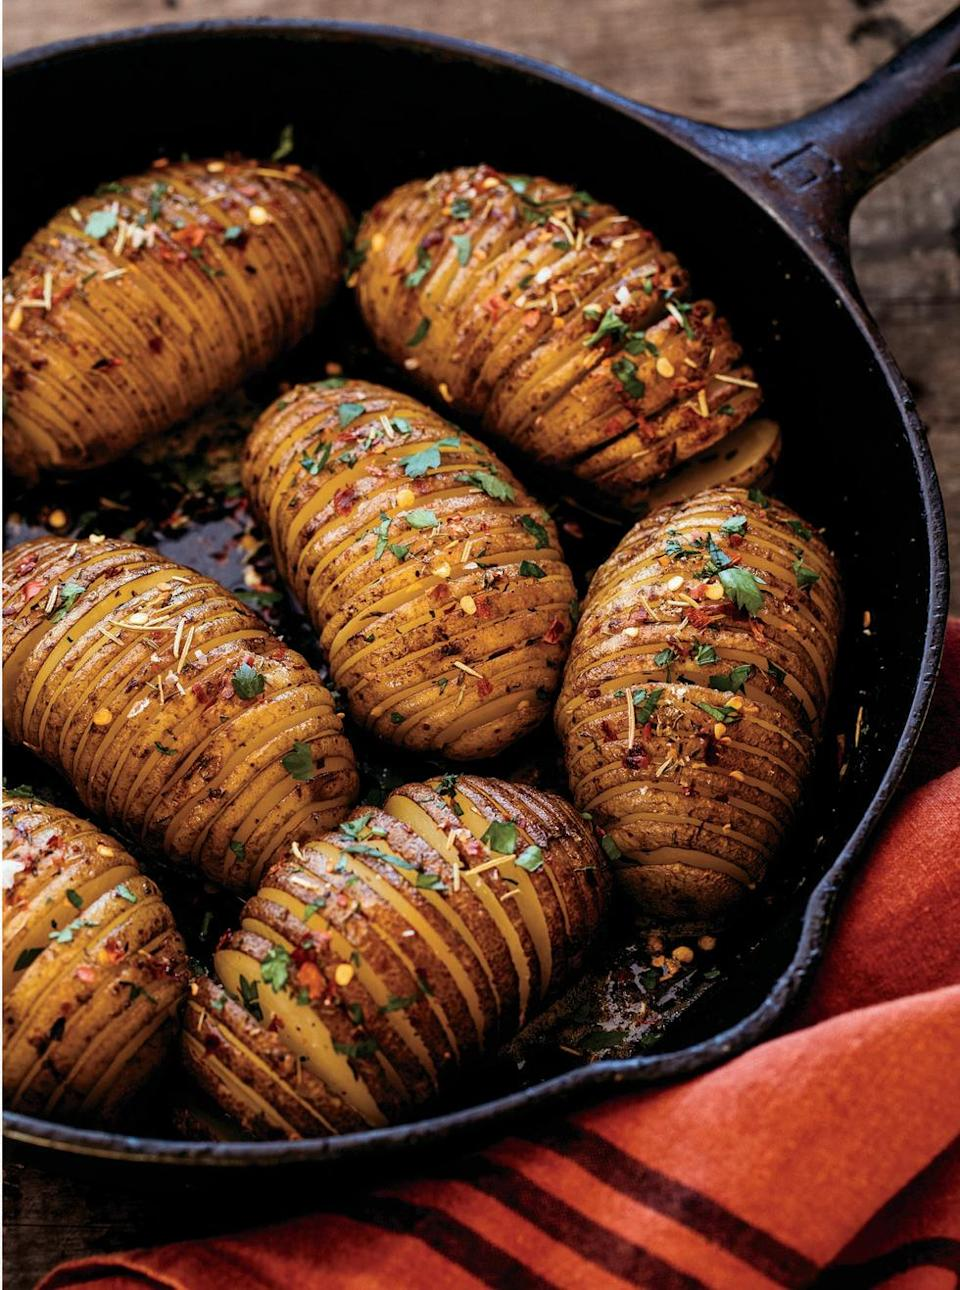 """<p>These perfectly spiced, heavily buttered, evenly cut potatoes are elegant, delicious, and easy to make. What more could you want? </p><p><strong><a href=""""https://www.countryliving.com/food-drinks/a34277029/cast-iron-hasselback-potatoes/"""" rel=""""nofollow noopener"""" target=""""_blank"""" data-ylk=""""slk:Get the recipe"""" class=""""link rapid-noclick-resp"""">Get the recipe</a>.</strong> </p>"""